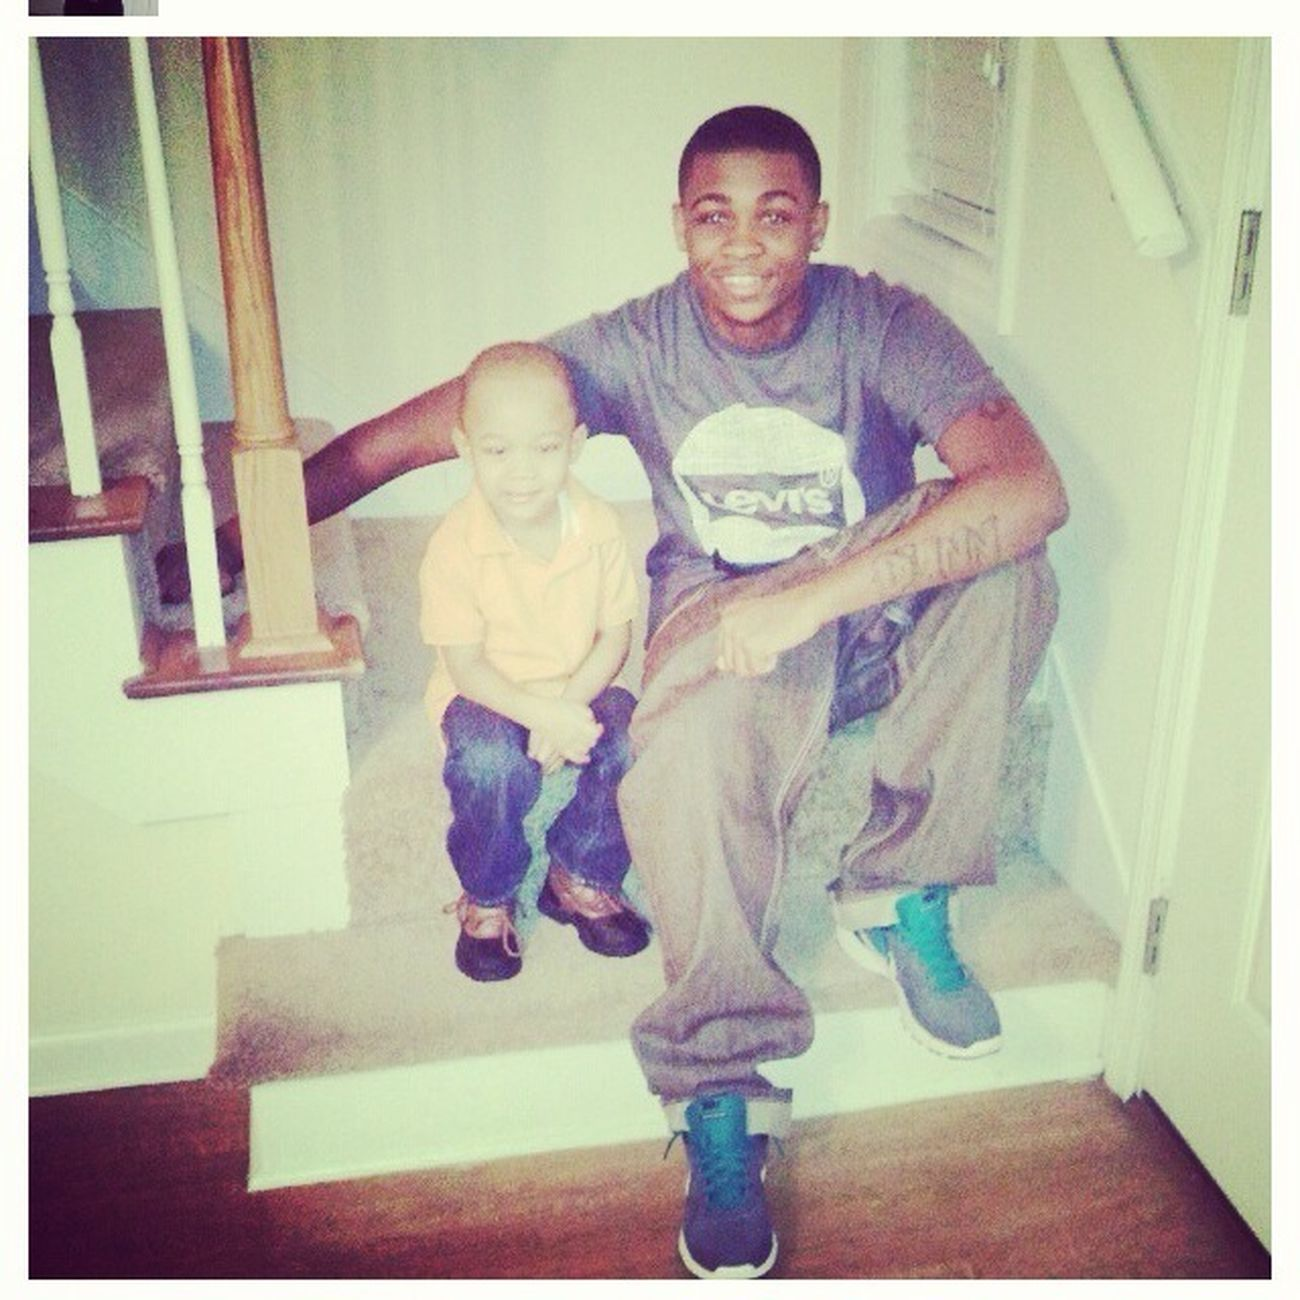 Me & The Lil Guy